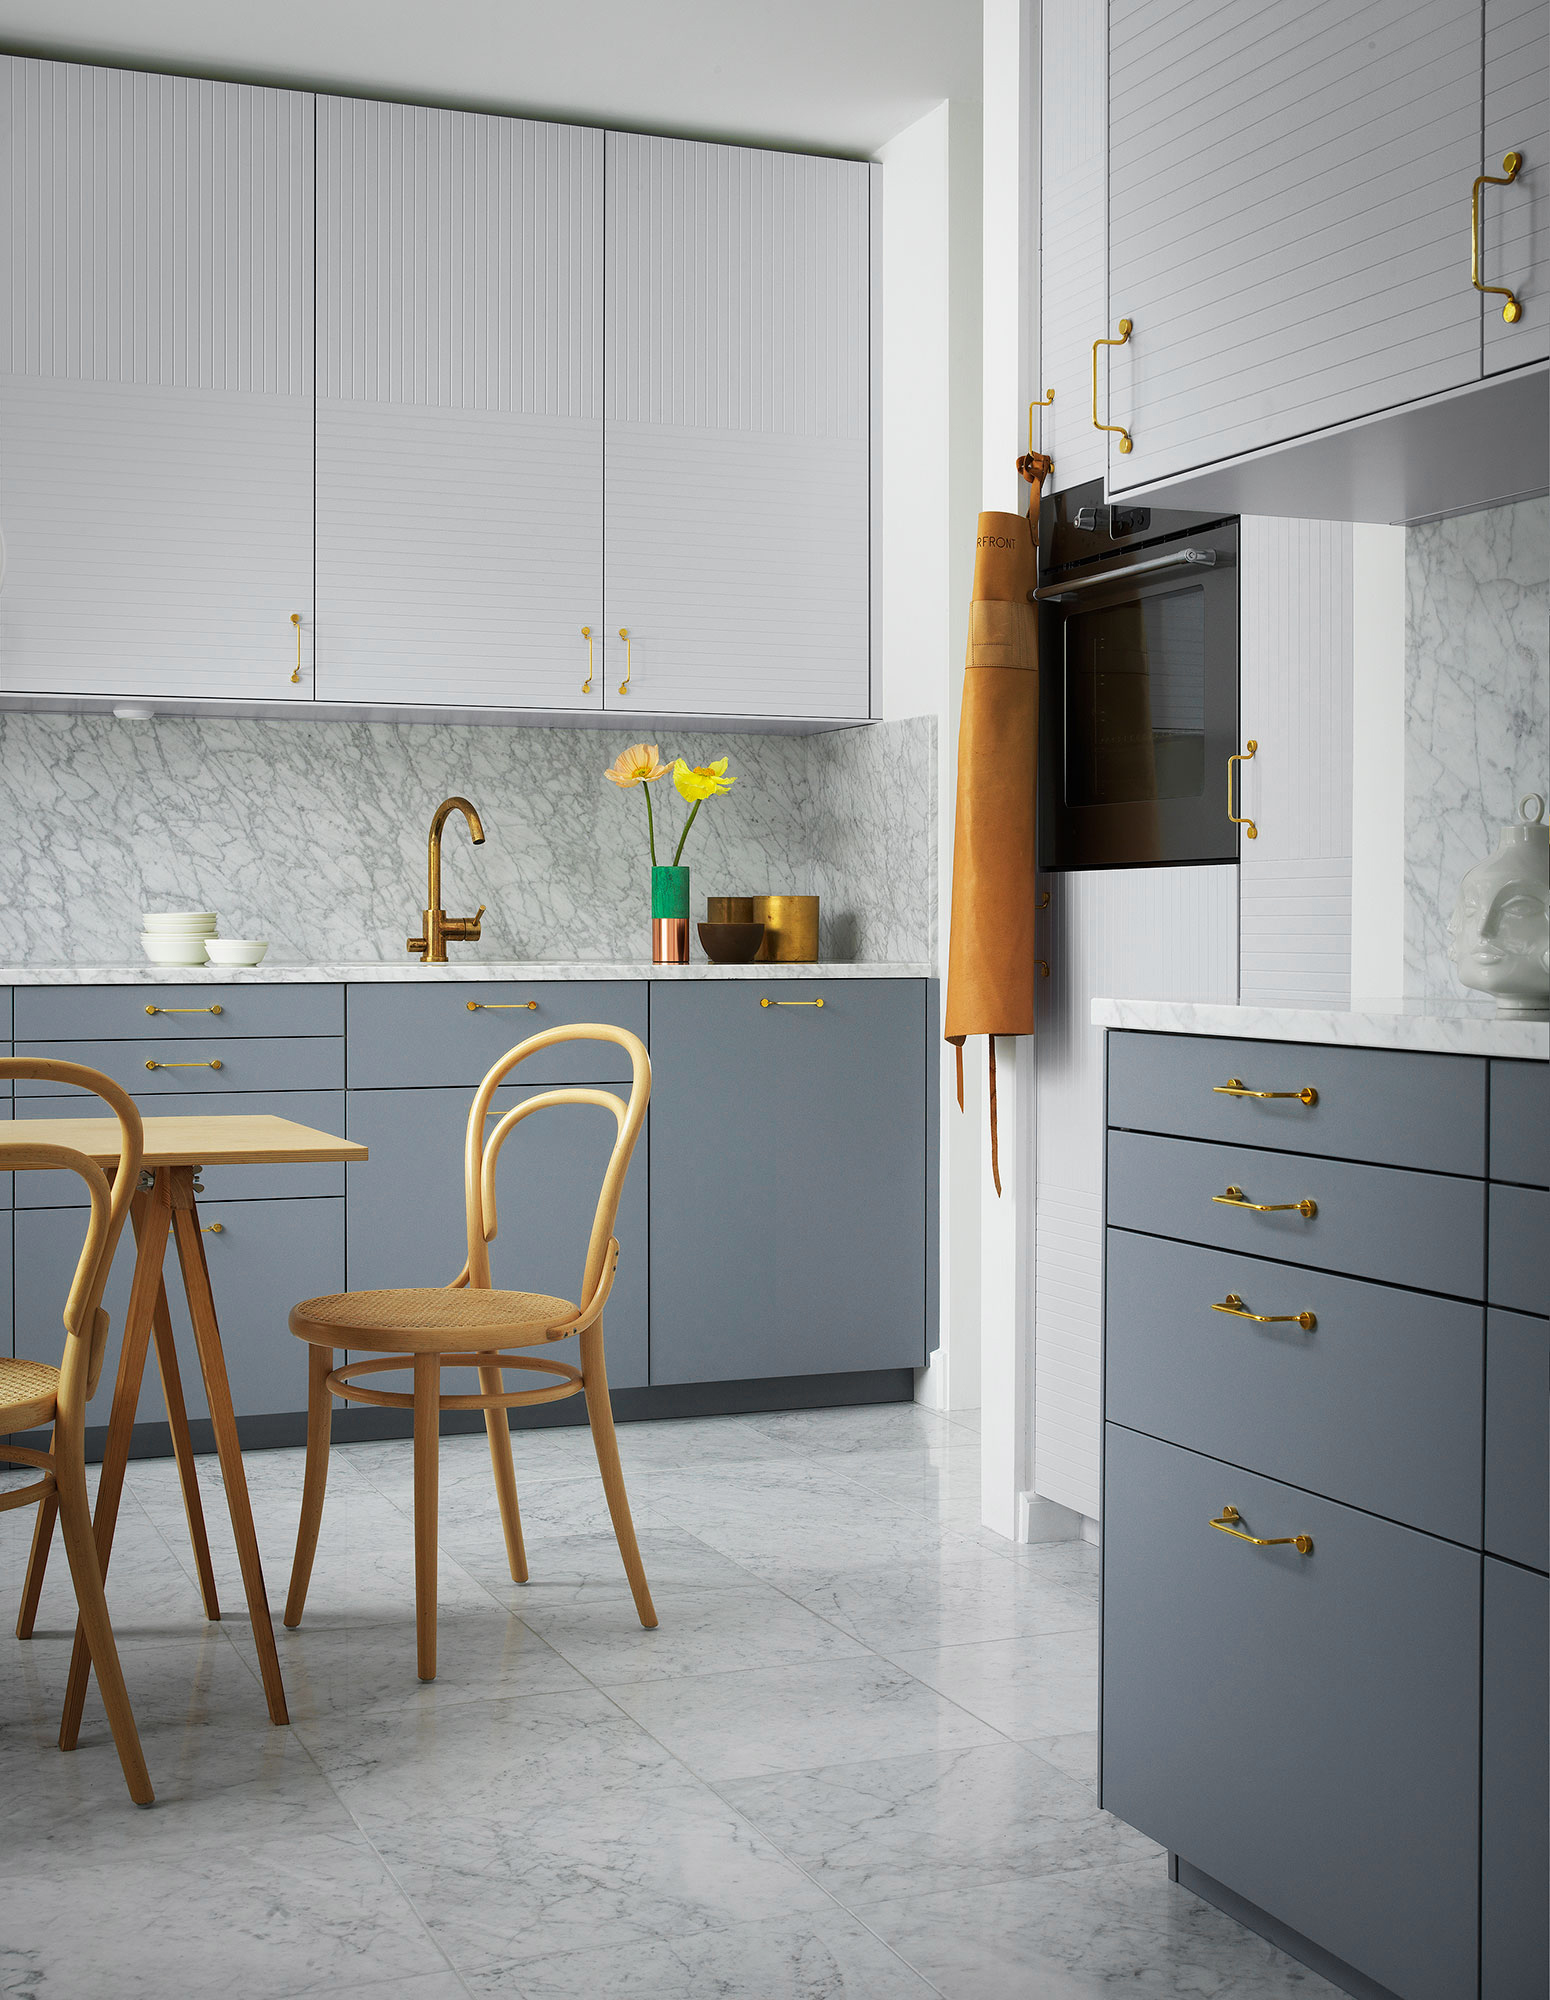 Ikea Front Kitchen Ideas & Designs | Ikea Kitchen Inspiration | Superfront